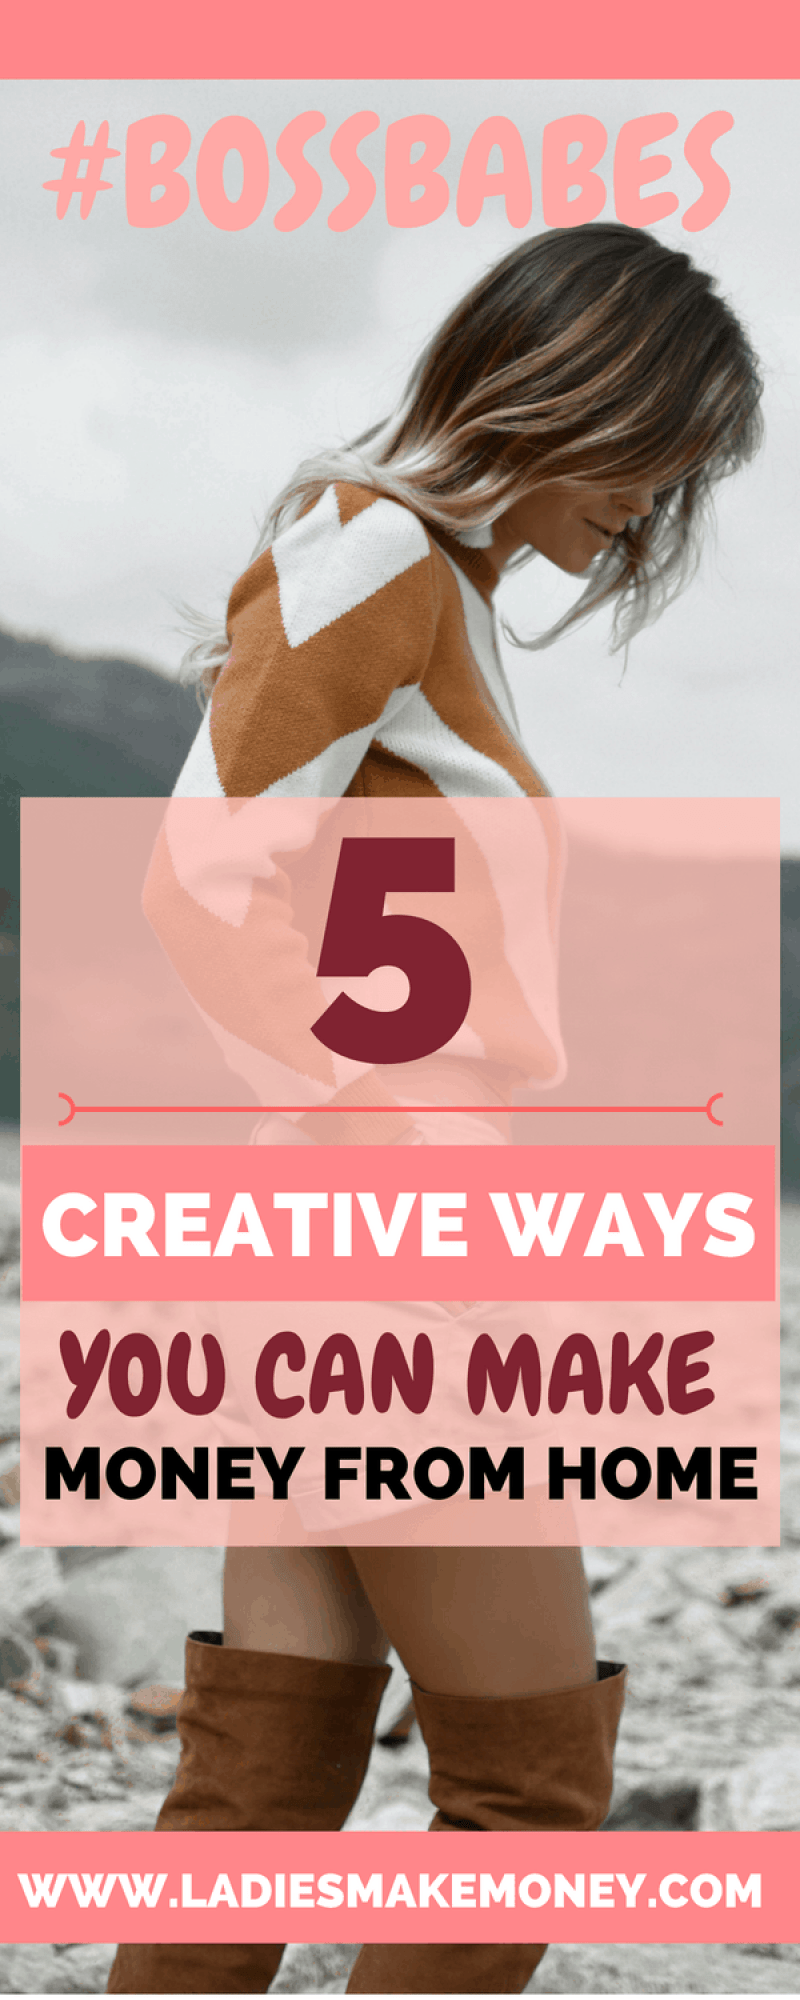 #BossBabe- 5 Creative Ways You Can Make Money From Home